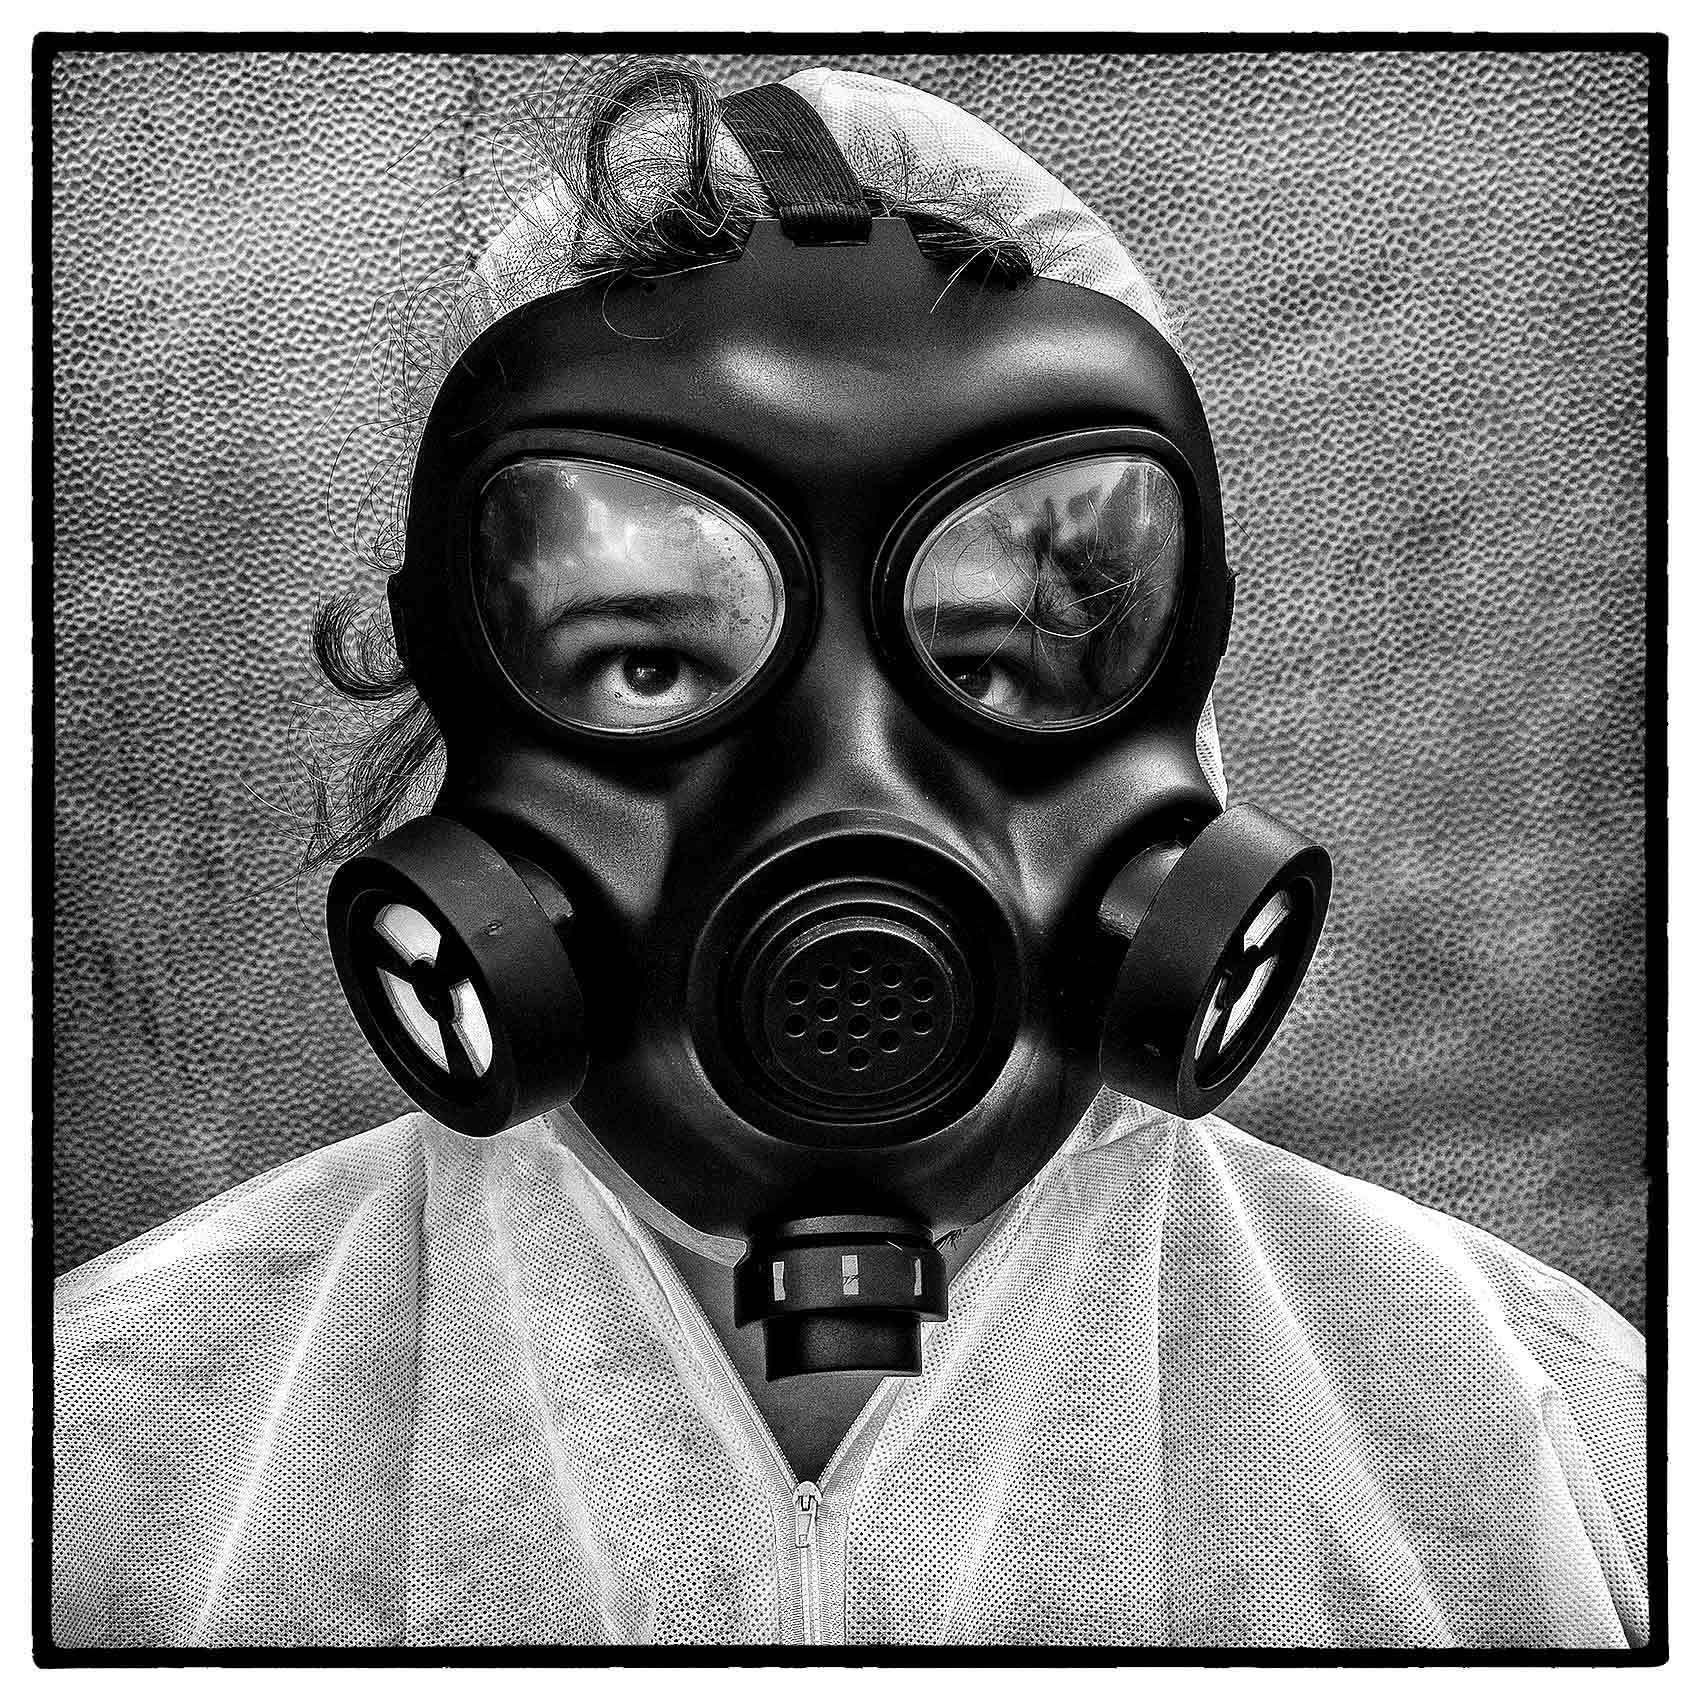 a woman sweats as she wears a gas mask in Toronto during the covid-19 pandemic